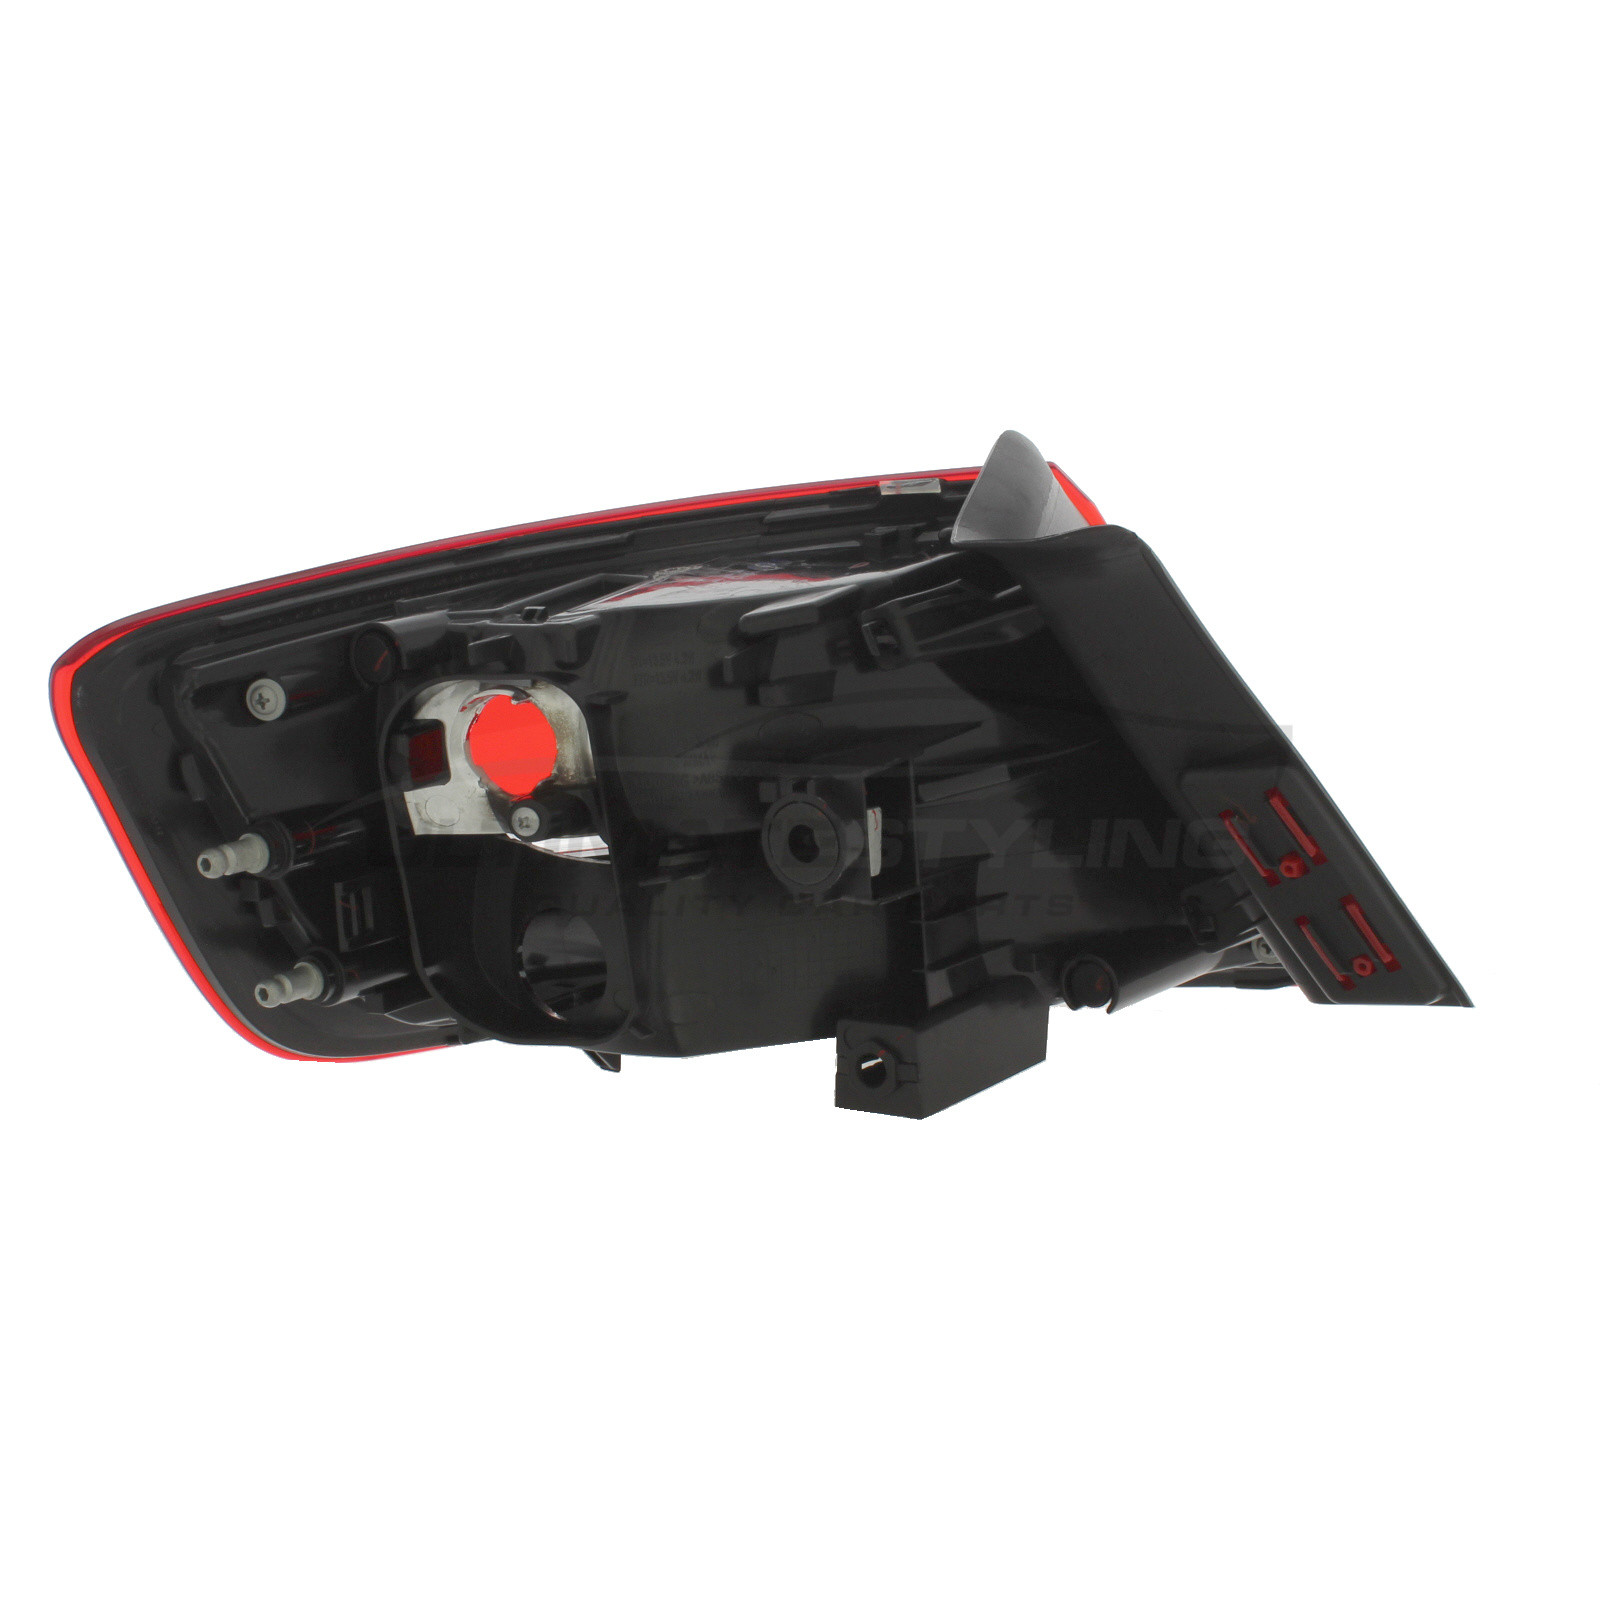 Audi A3 Rear Light / Tail Light - Drivers Side (RH), Rear Outer (Wing) - Non-LED